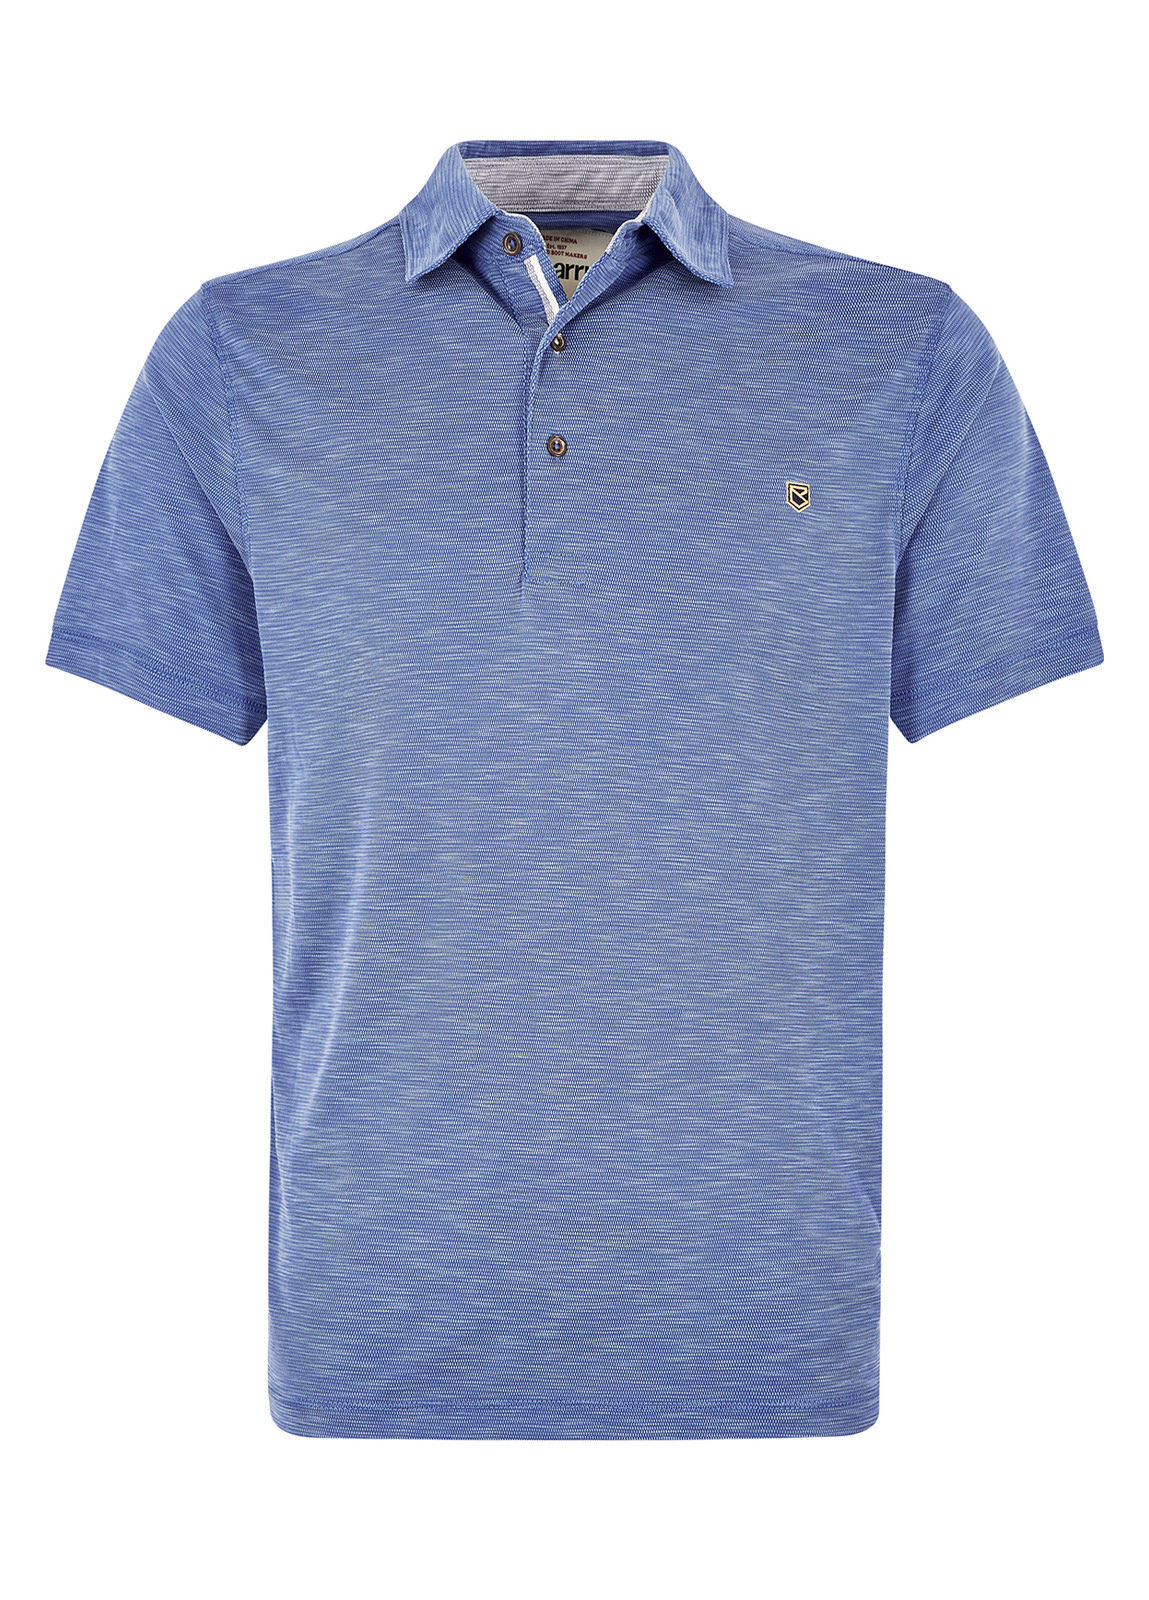 Dubarry_Elphin Polo Shirt - Royal Blue_Image_2